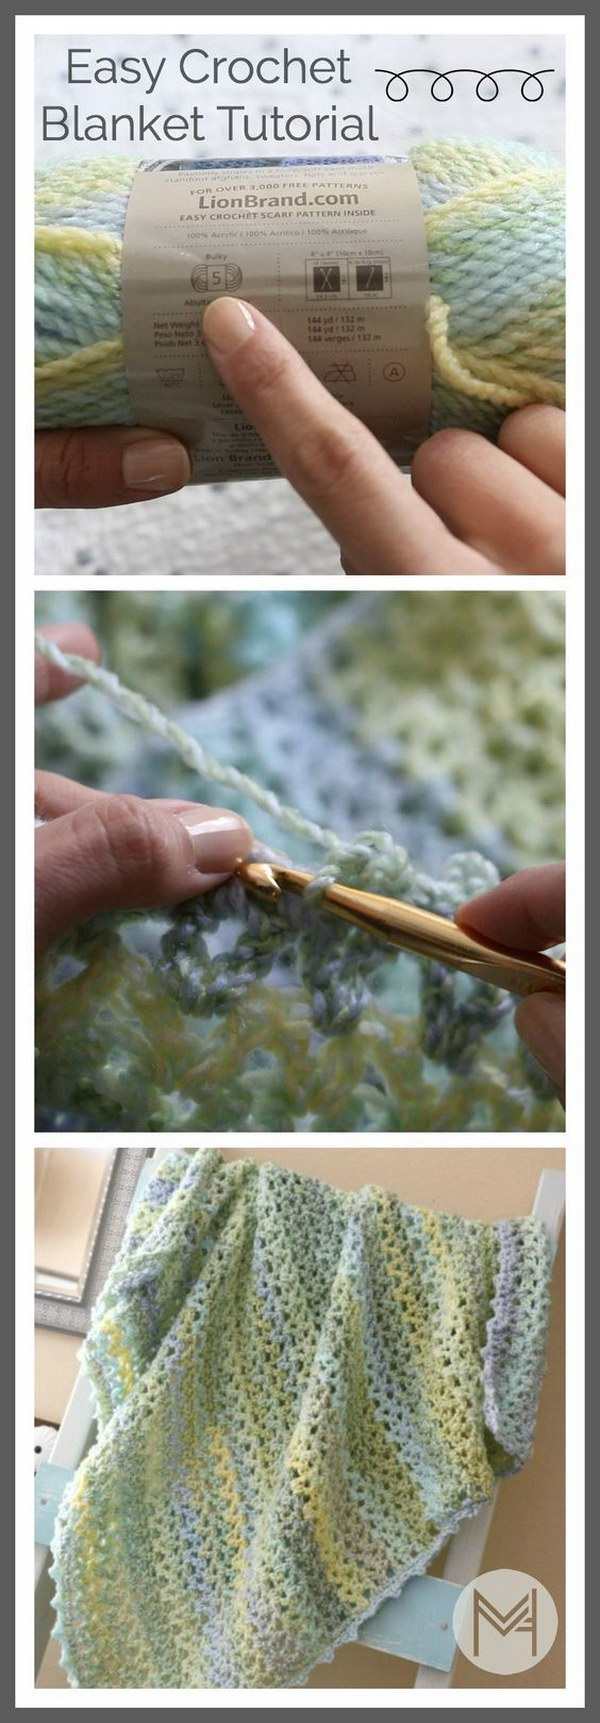 25 Beautiful Crochet Blankets with Free Patterns